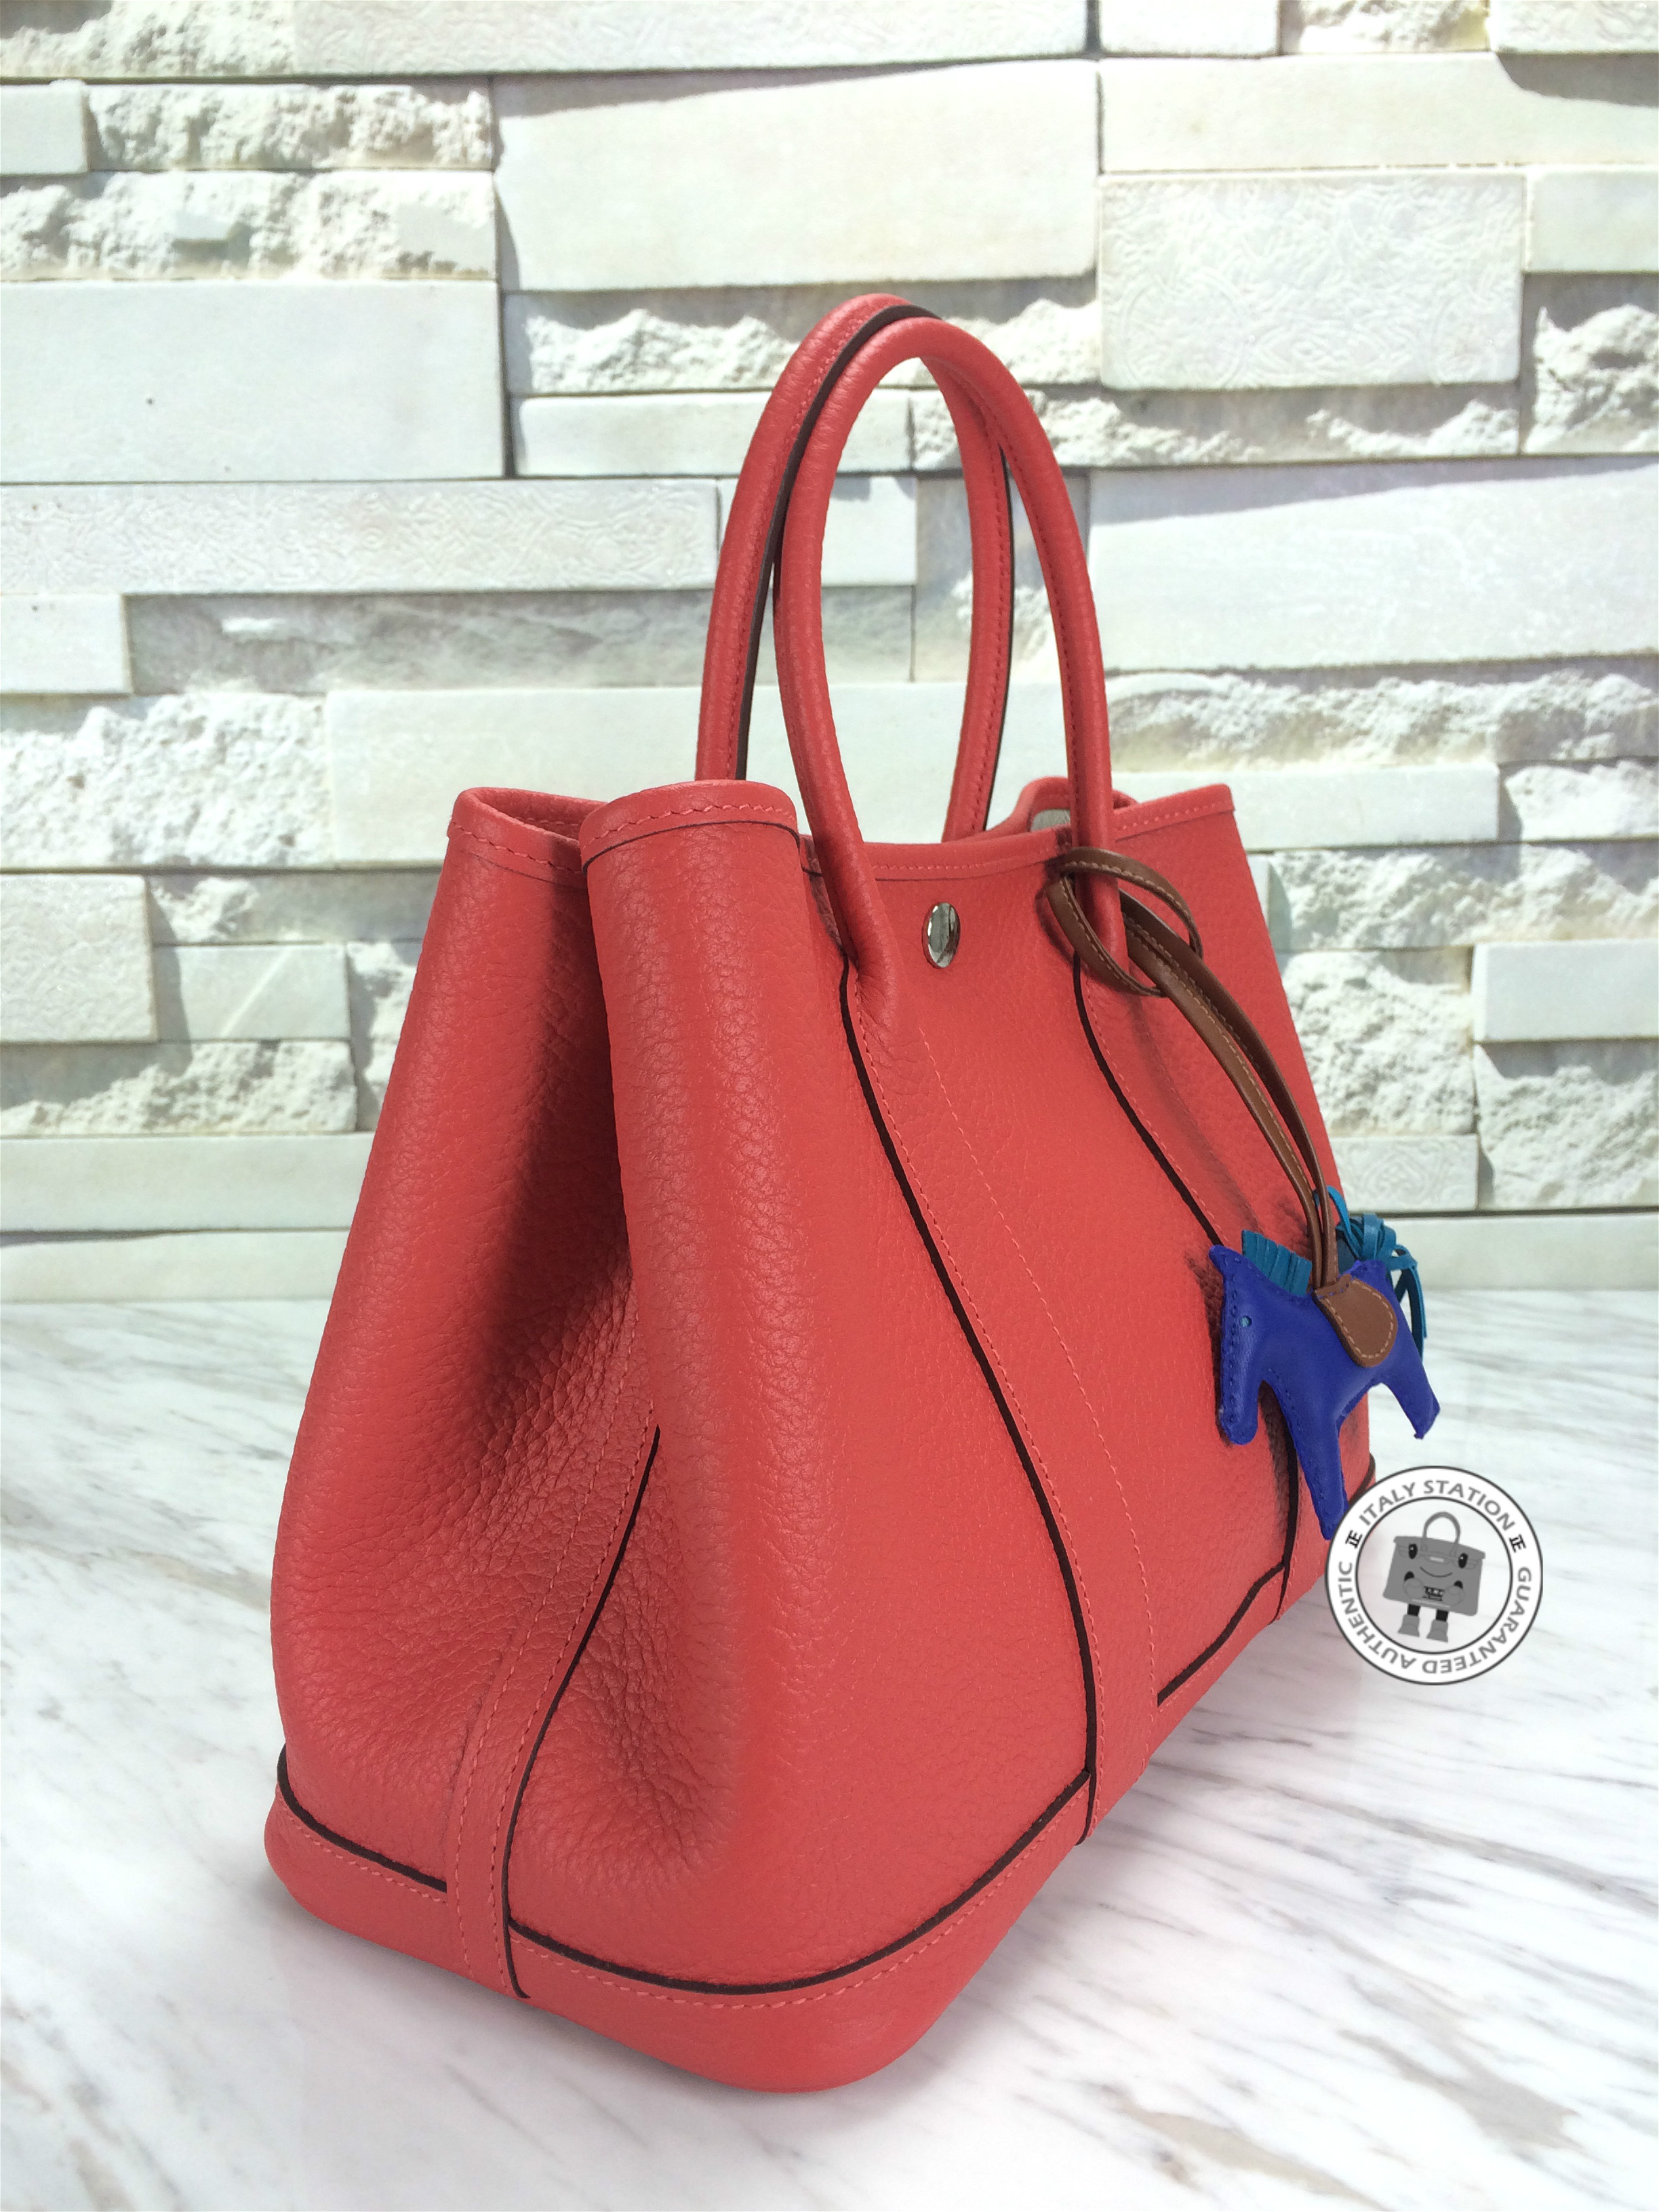 different styles of hermes bags - Hermes \u2013Garden Party TPM 30 ,Rouge Pivoine (2R) \u2013 �����վ ...